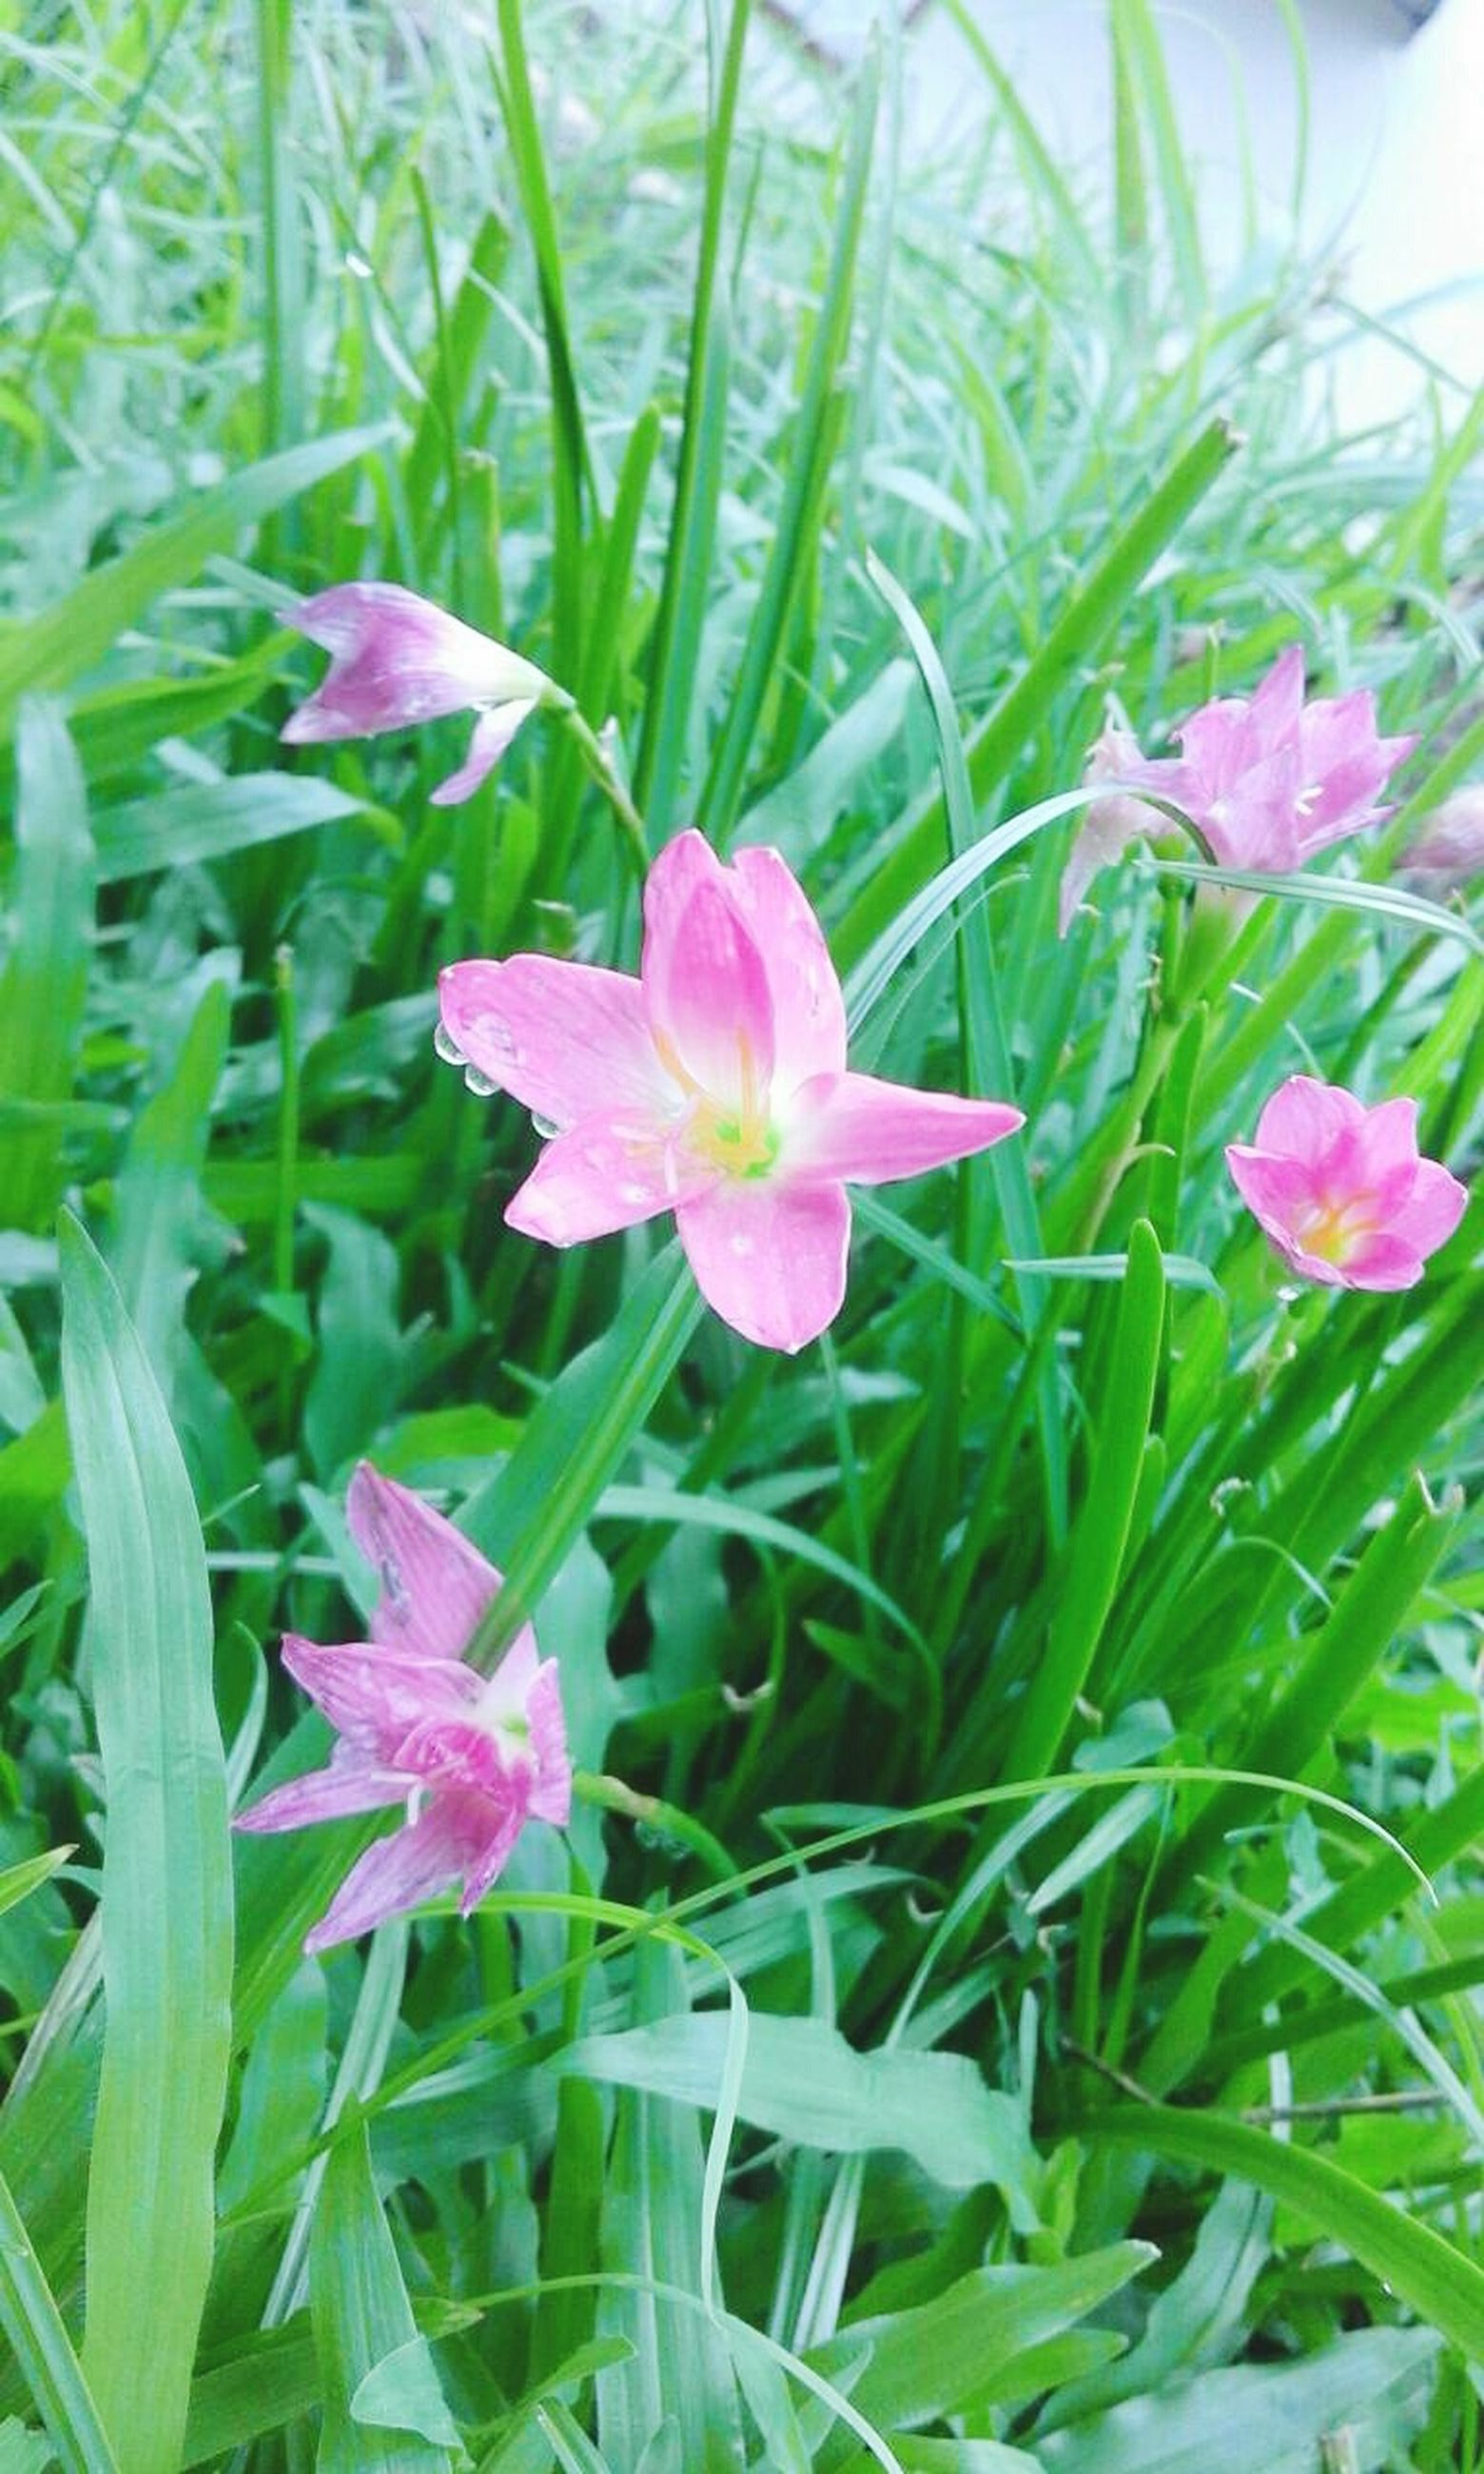 flower, freshness, petal, fragility, growth, flower head, beauty in nature, pink color, blooming, plant, nature, leaf, green color, field, in bloom, grass, close-up, day, outdoors, no people, focus on foreground, blossom, purple, botany, pollen, tranquility, green, selective focus